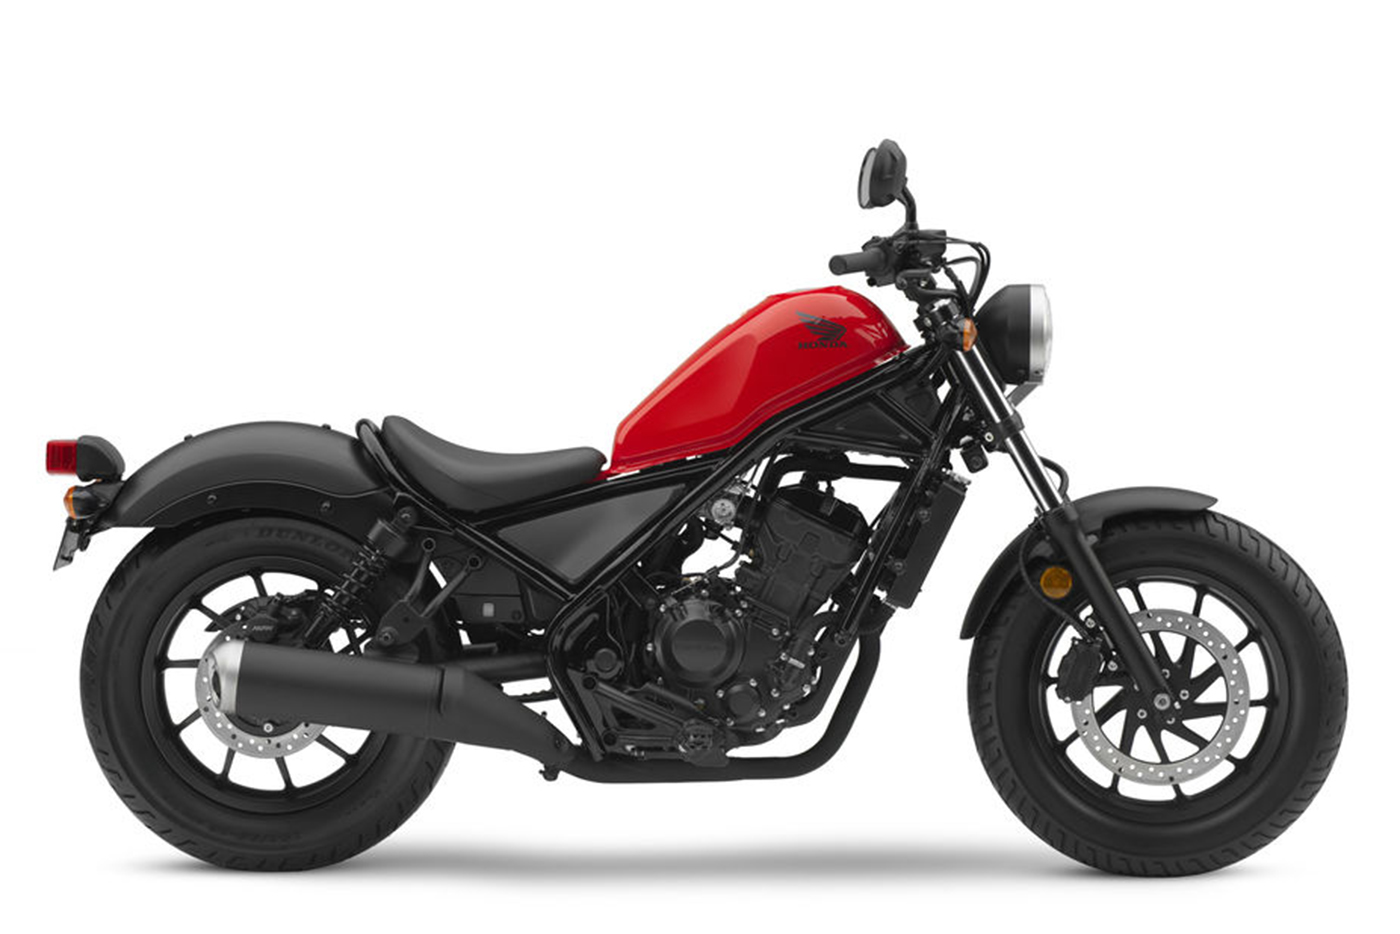 honda-rebel-250-2017-6.jpg